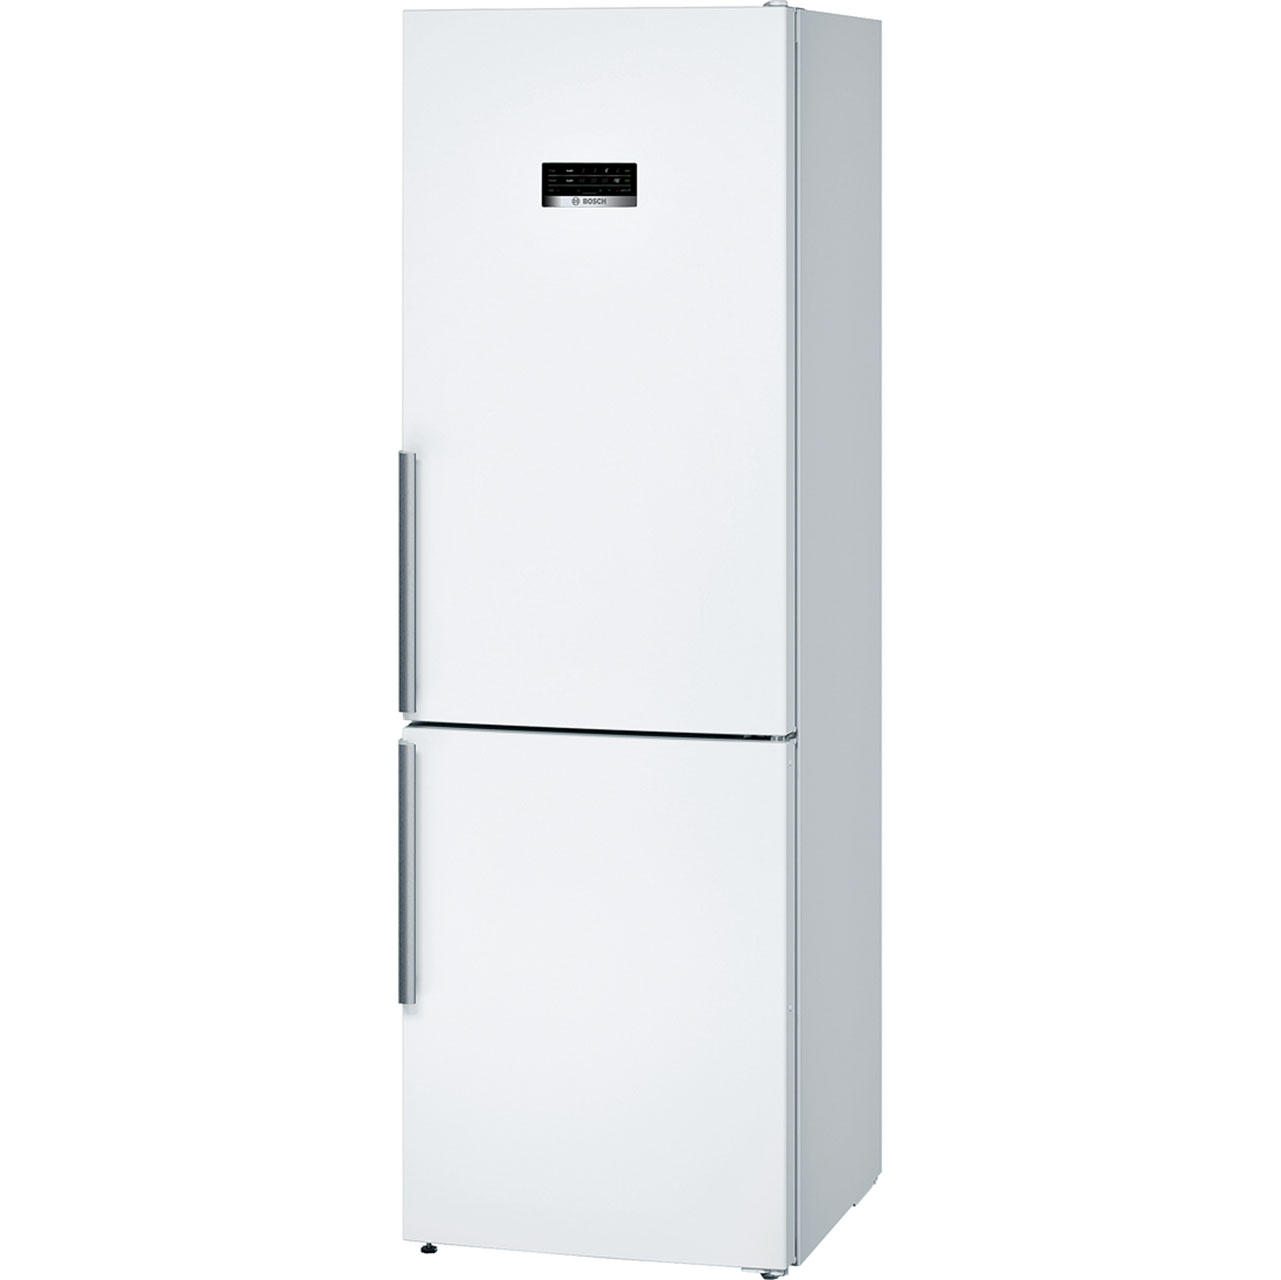 Image of Bosch Serie 4 KGN36XW35G Free Standing Fridge Freezer Frost Free in White